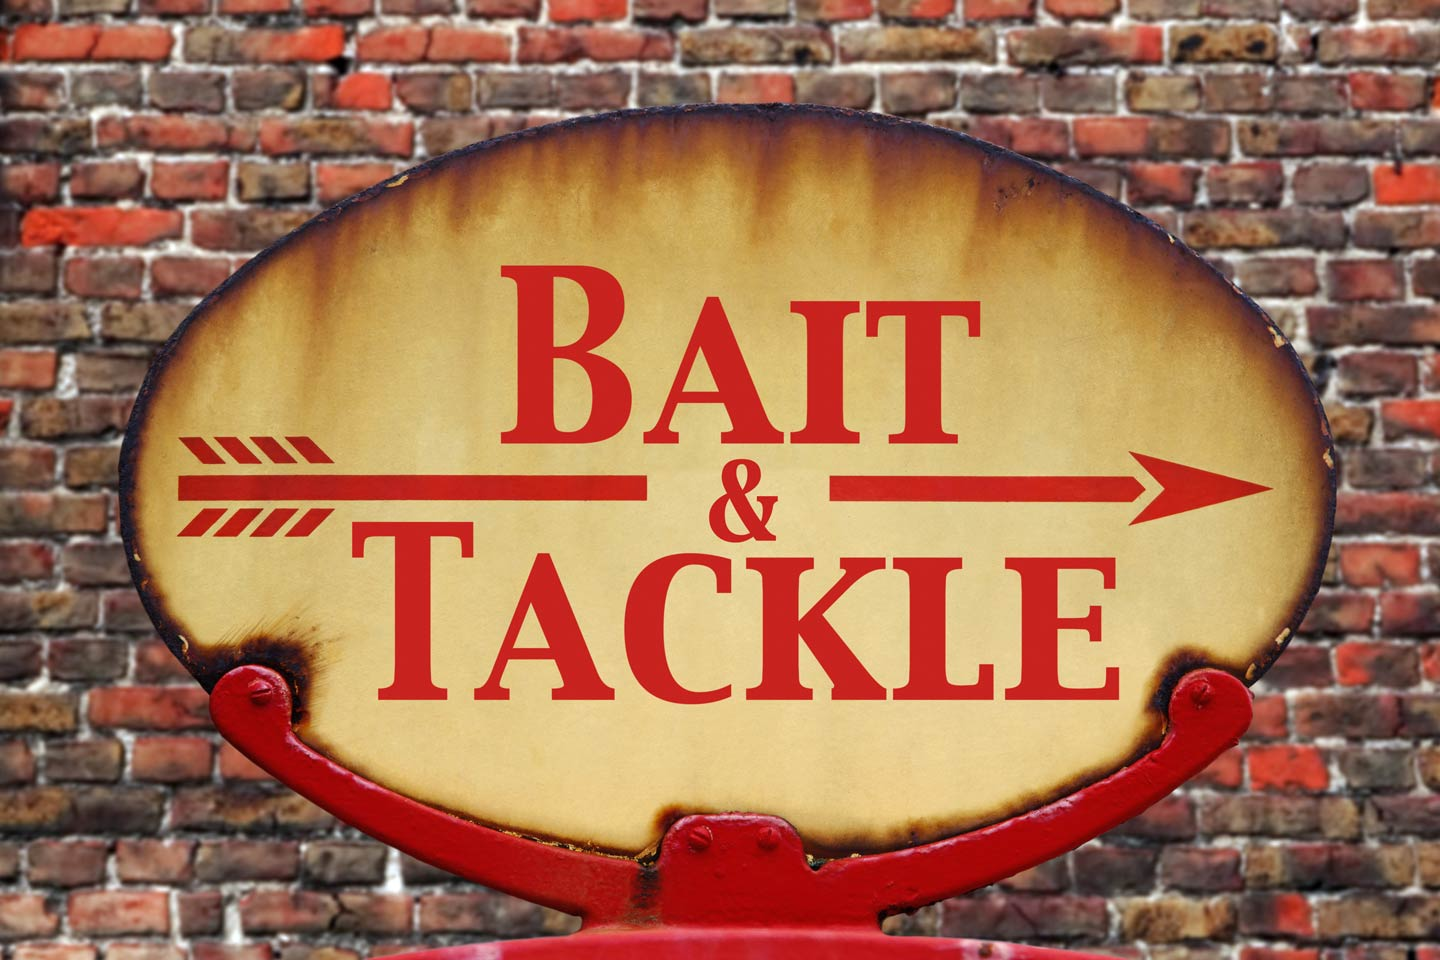 A vintage red and yellow bait and tackle sign against a brick wall.